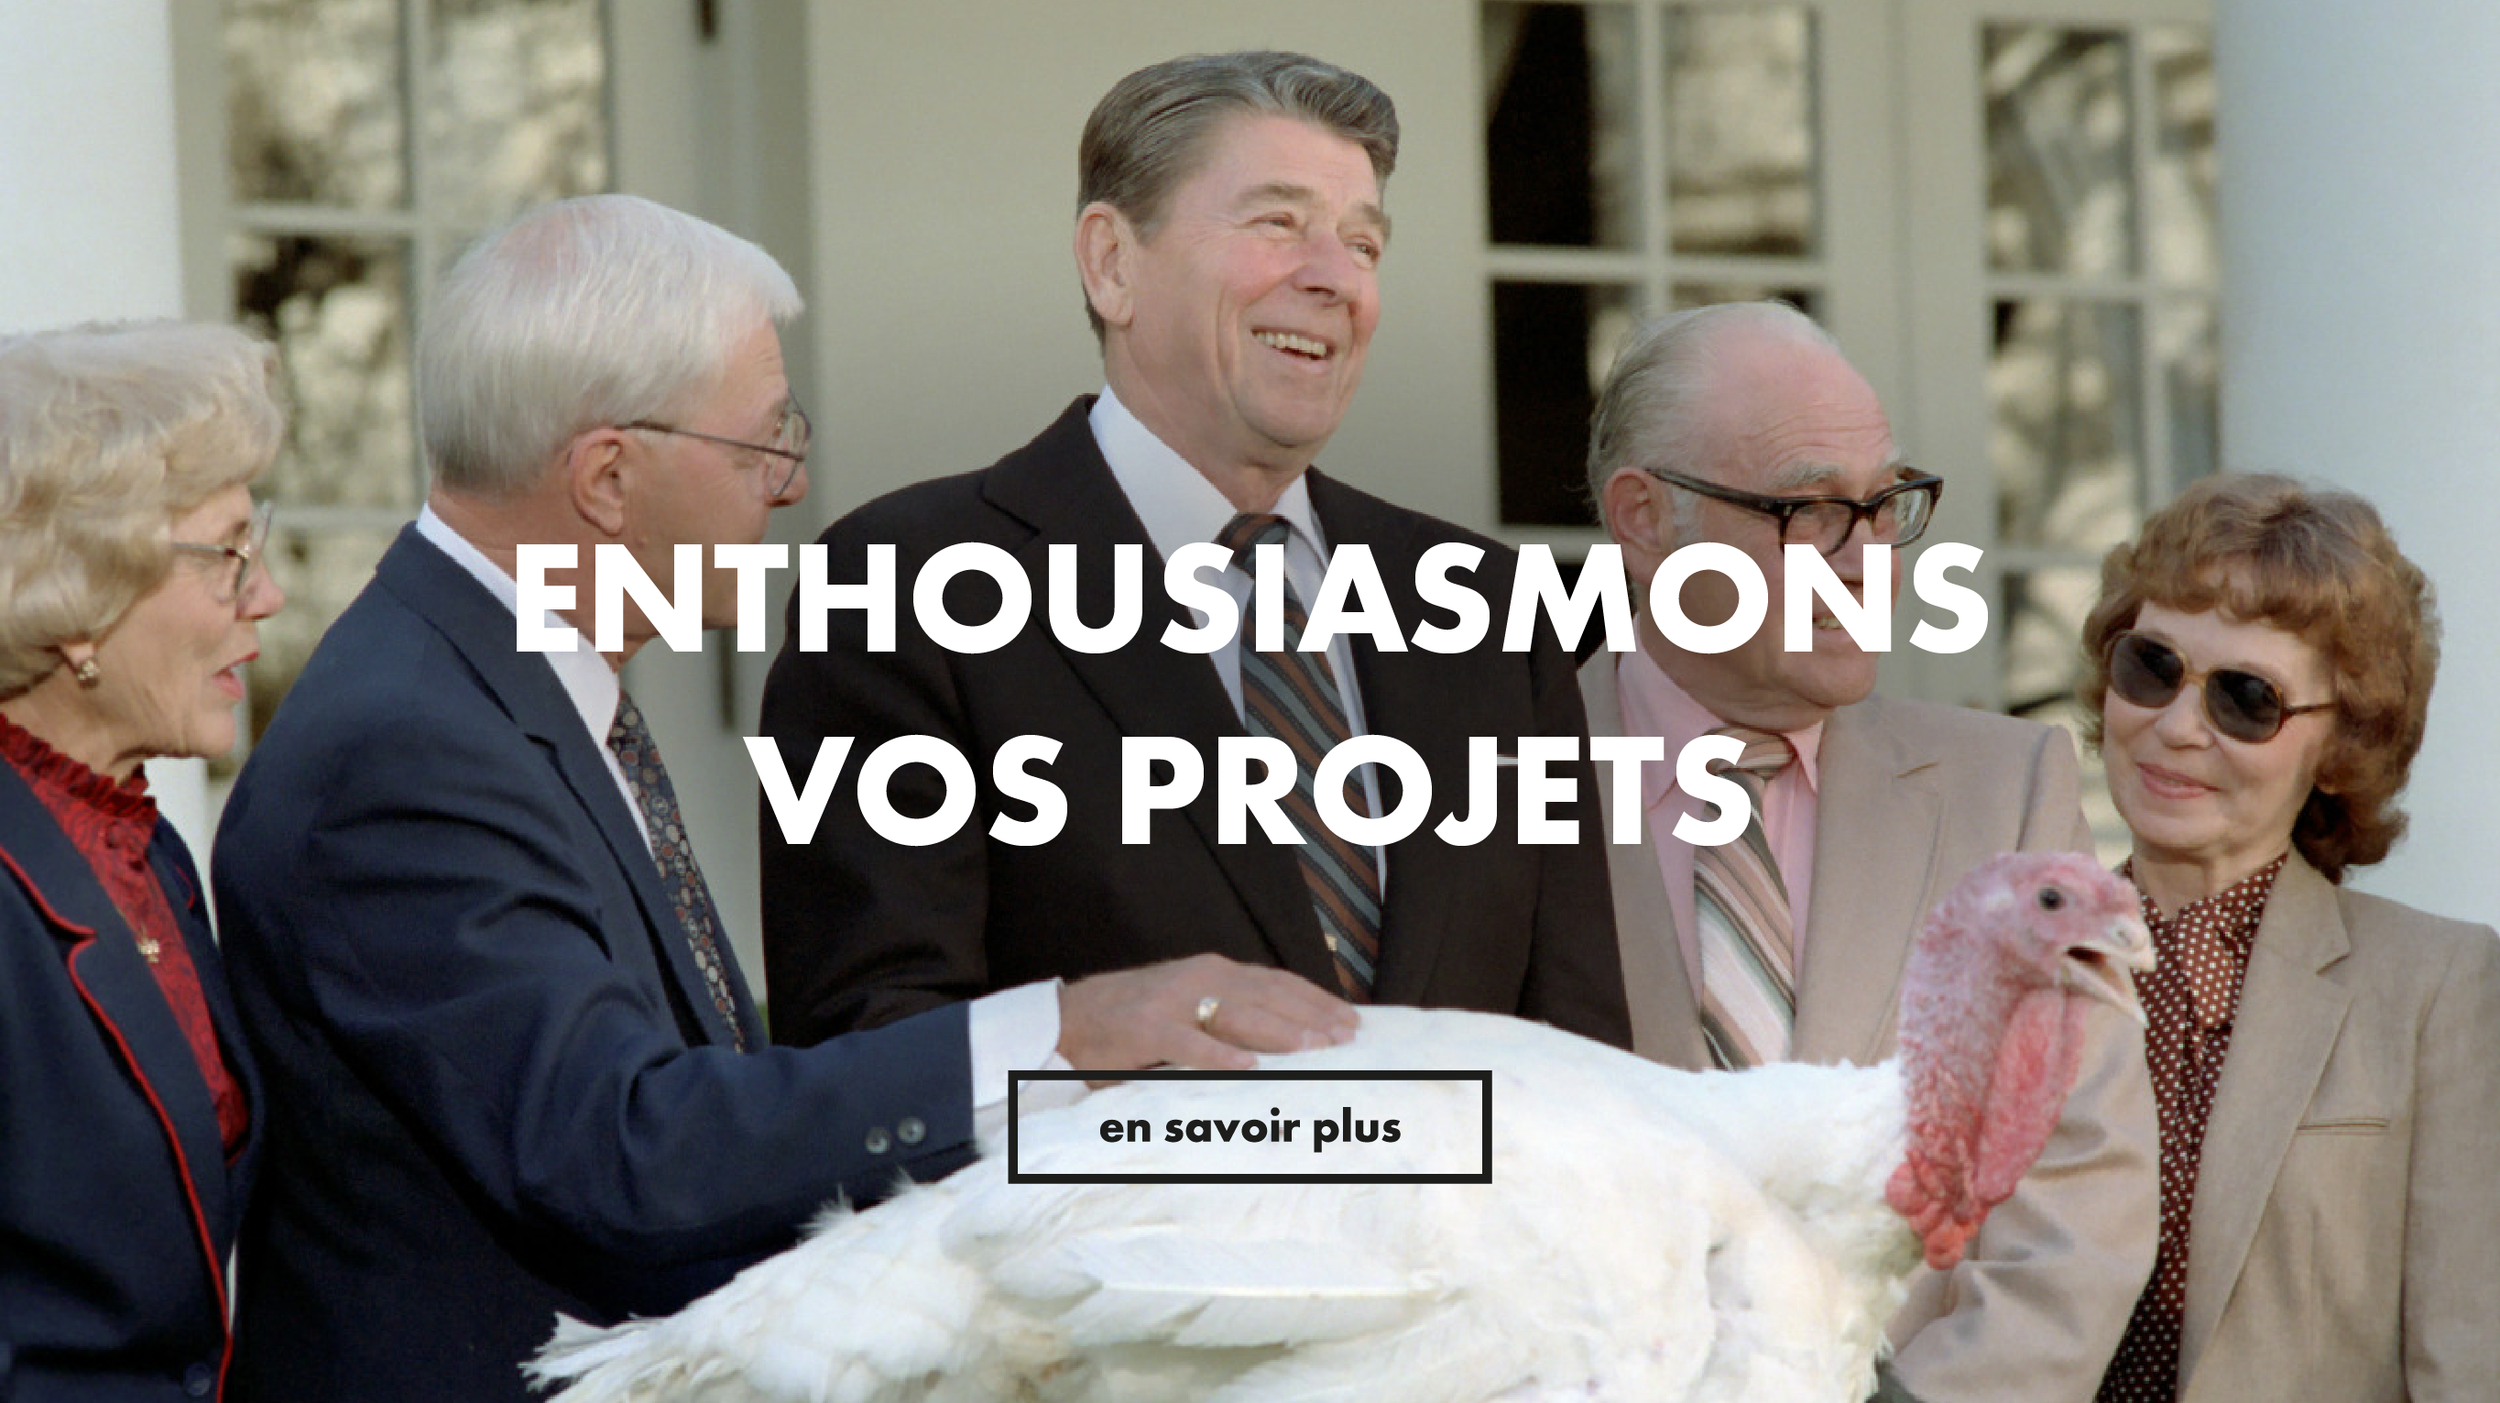 Enthousiasmons vos projets